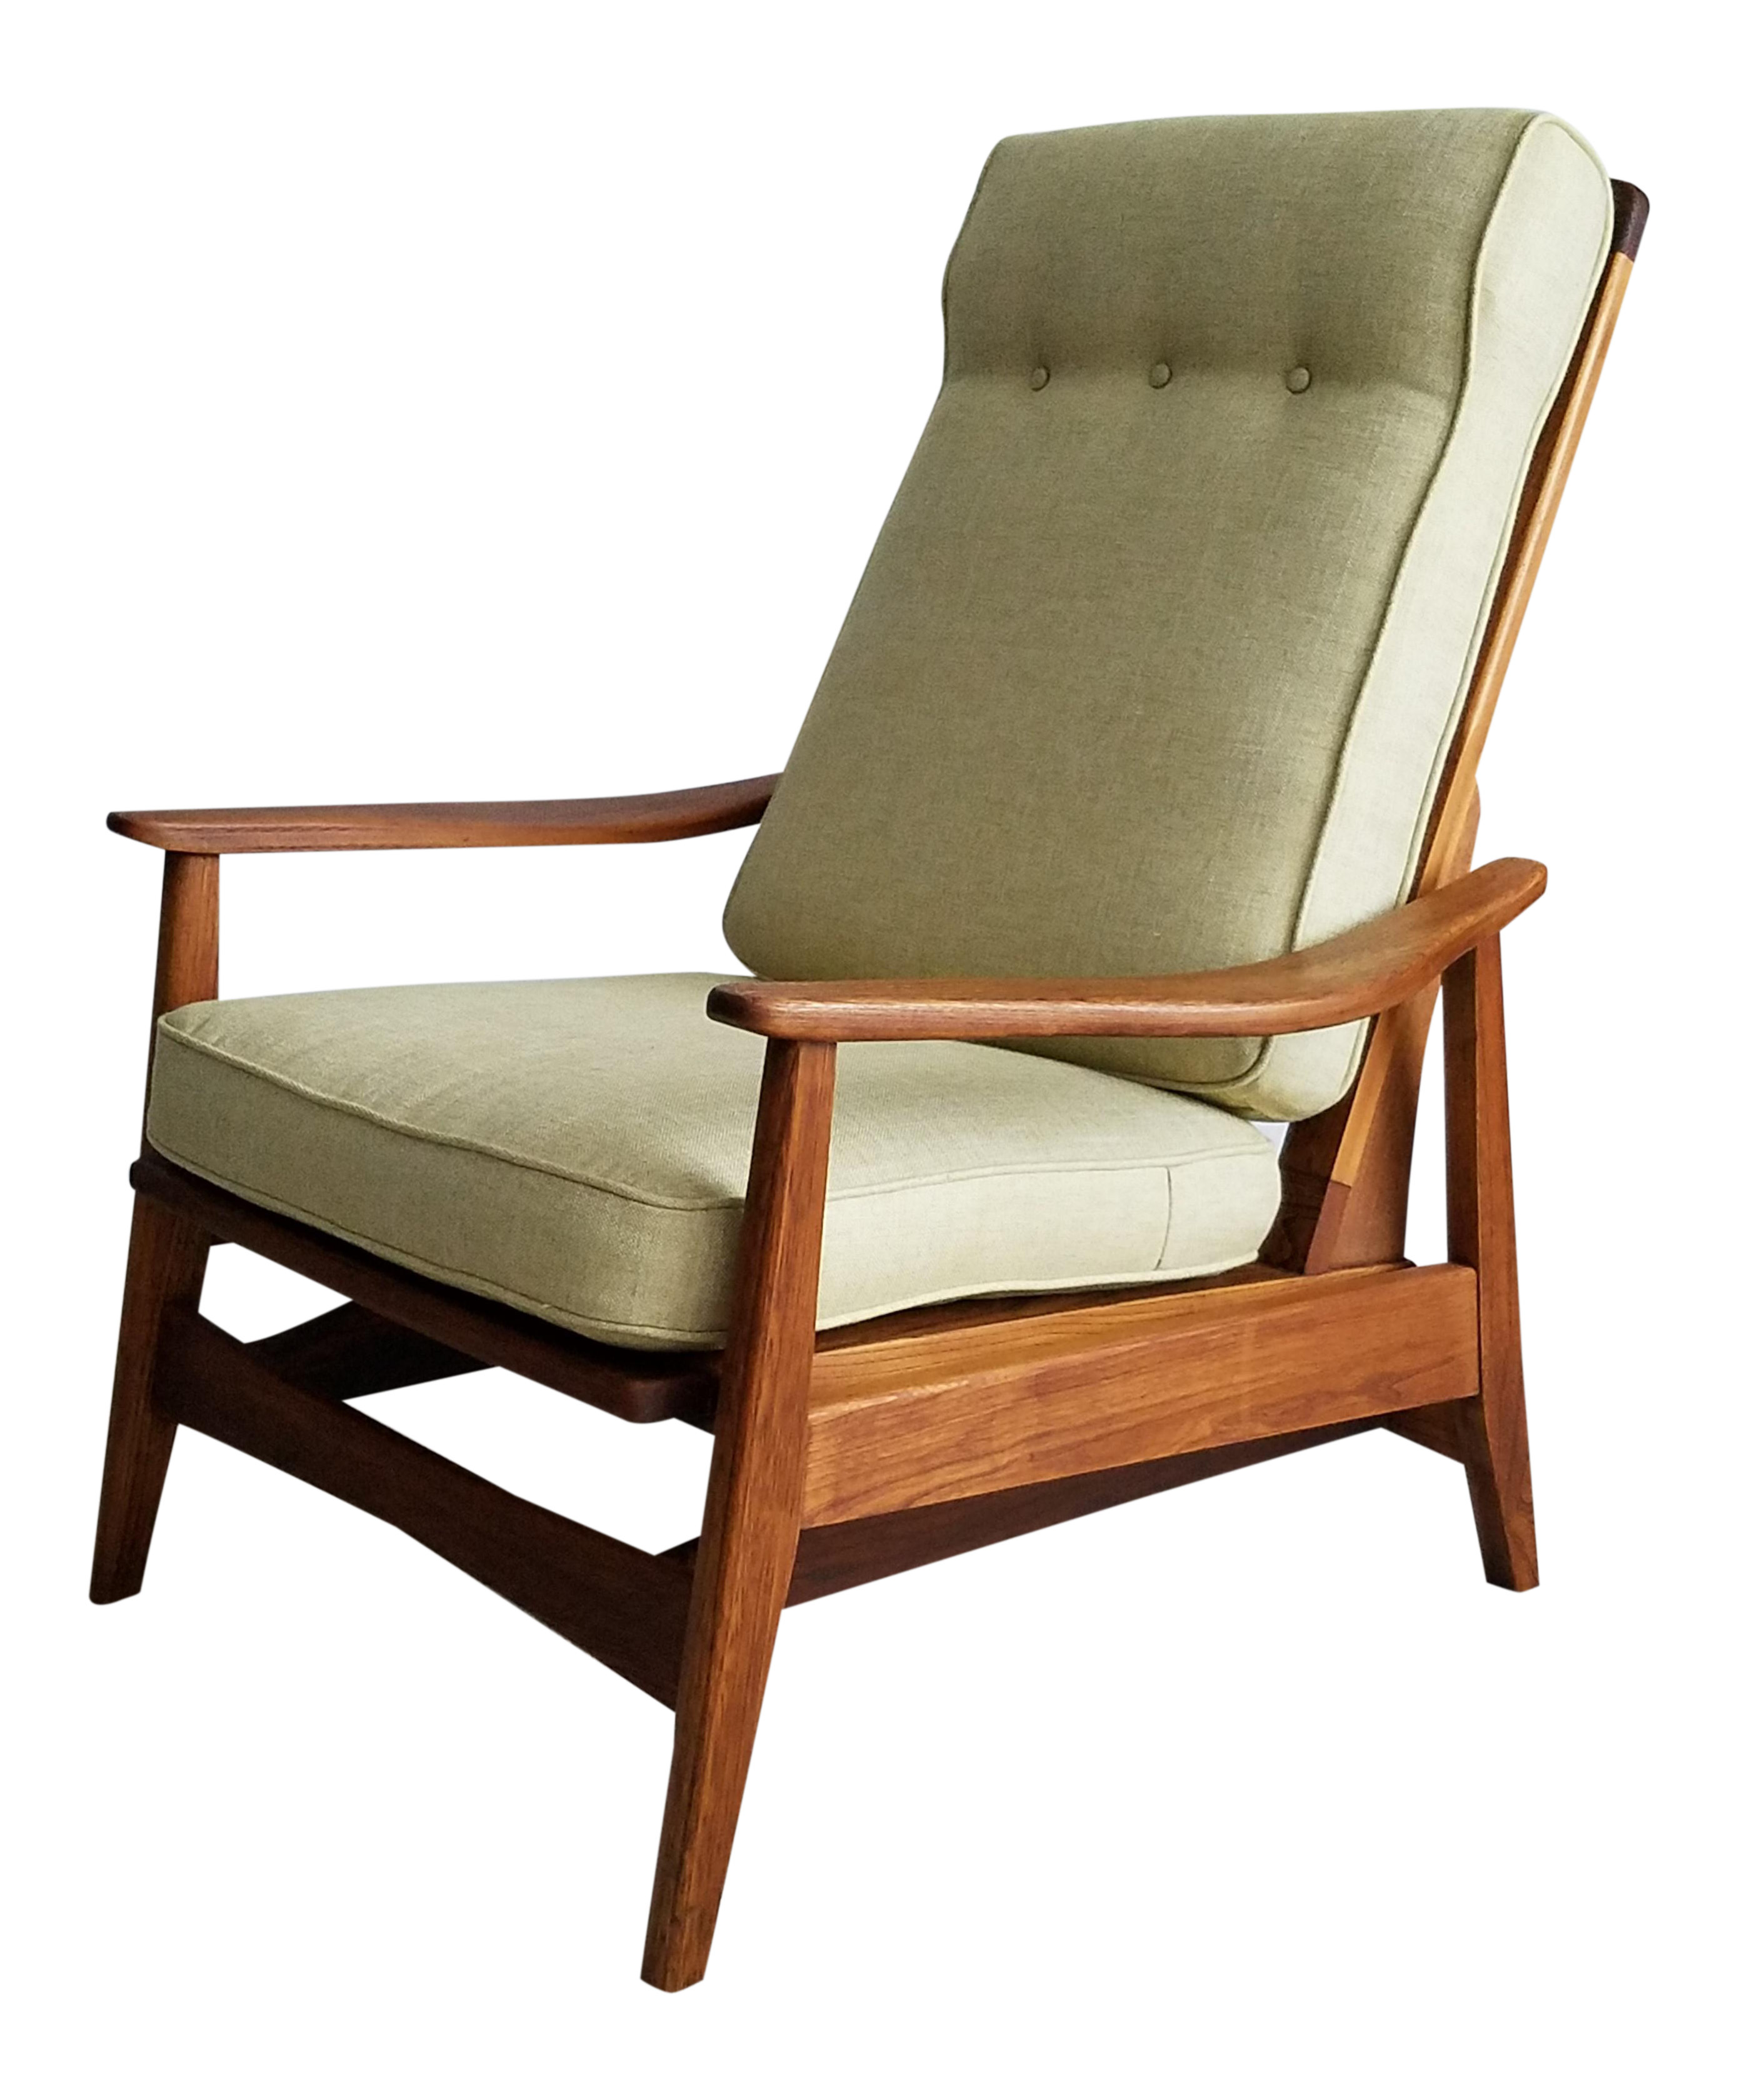 Vintage Used MidCentury Modern Rocking Chairs Chairish